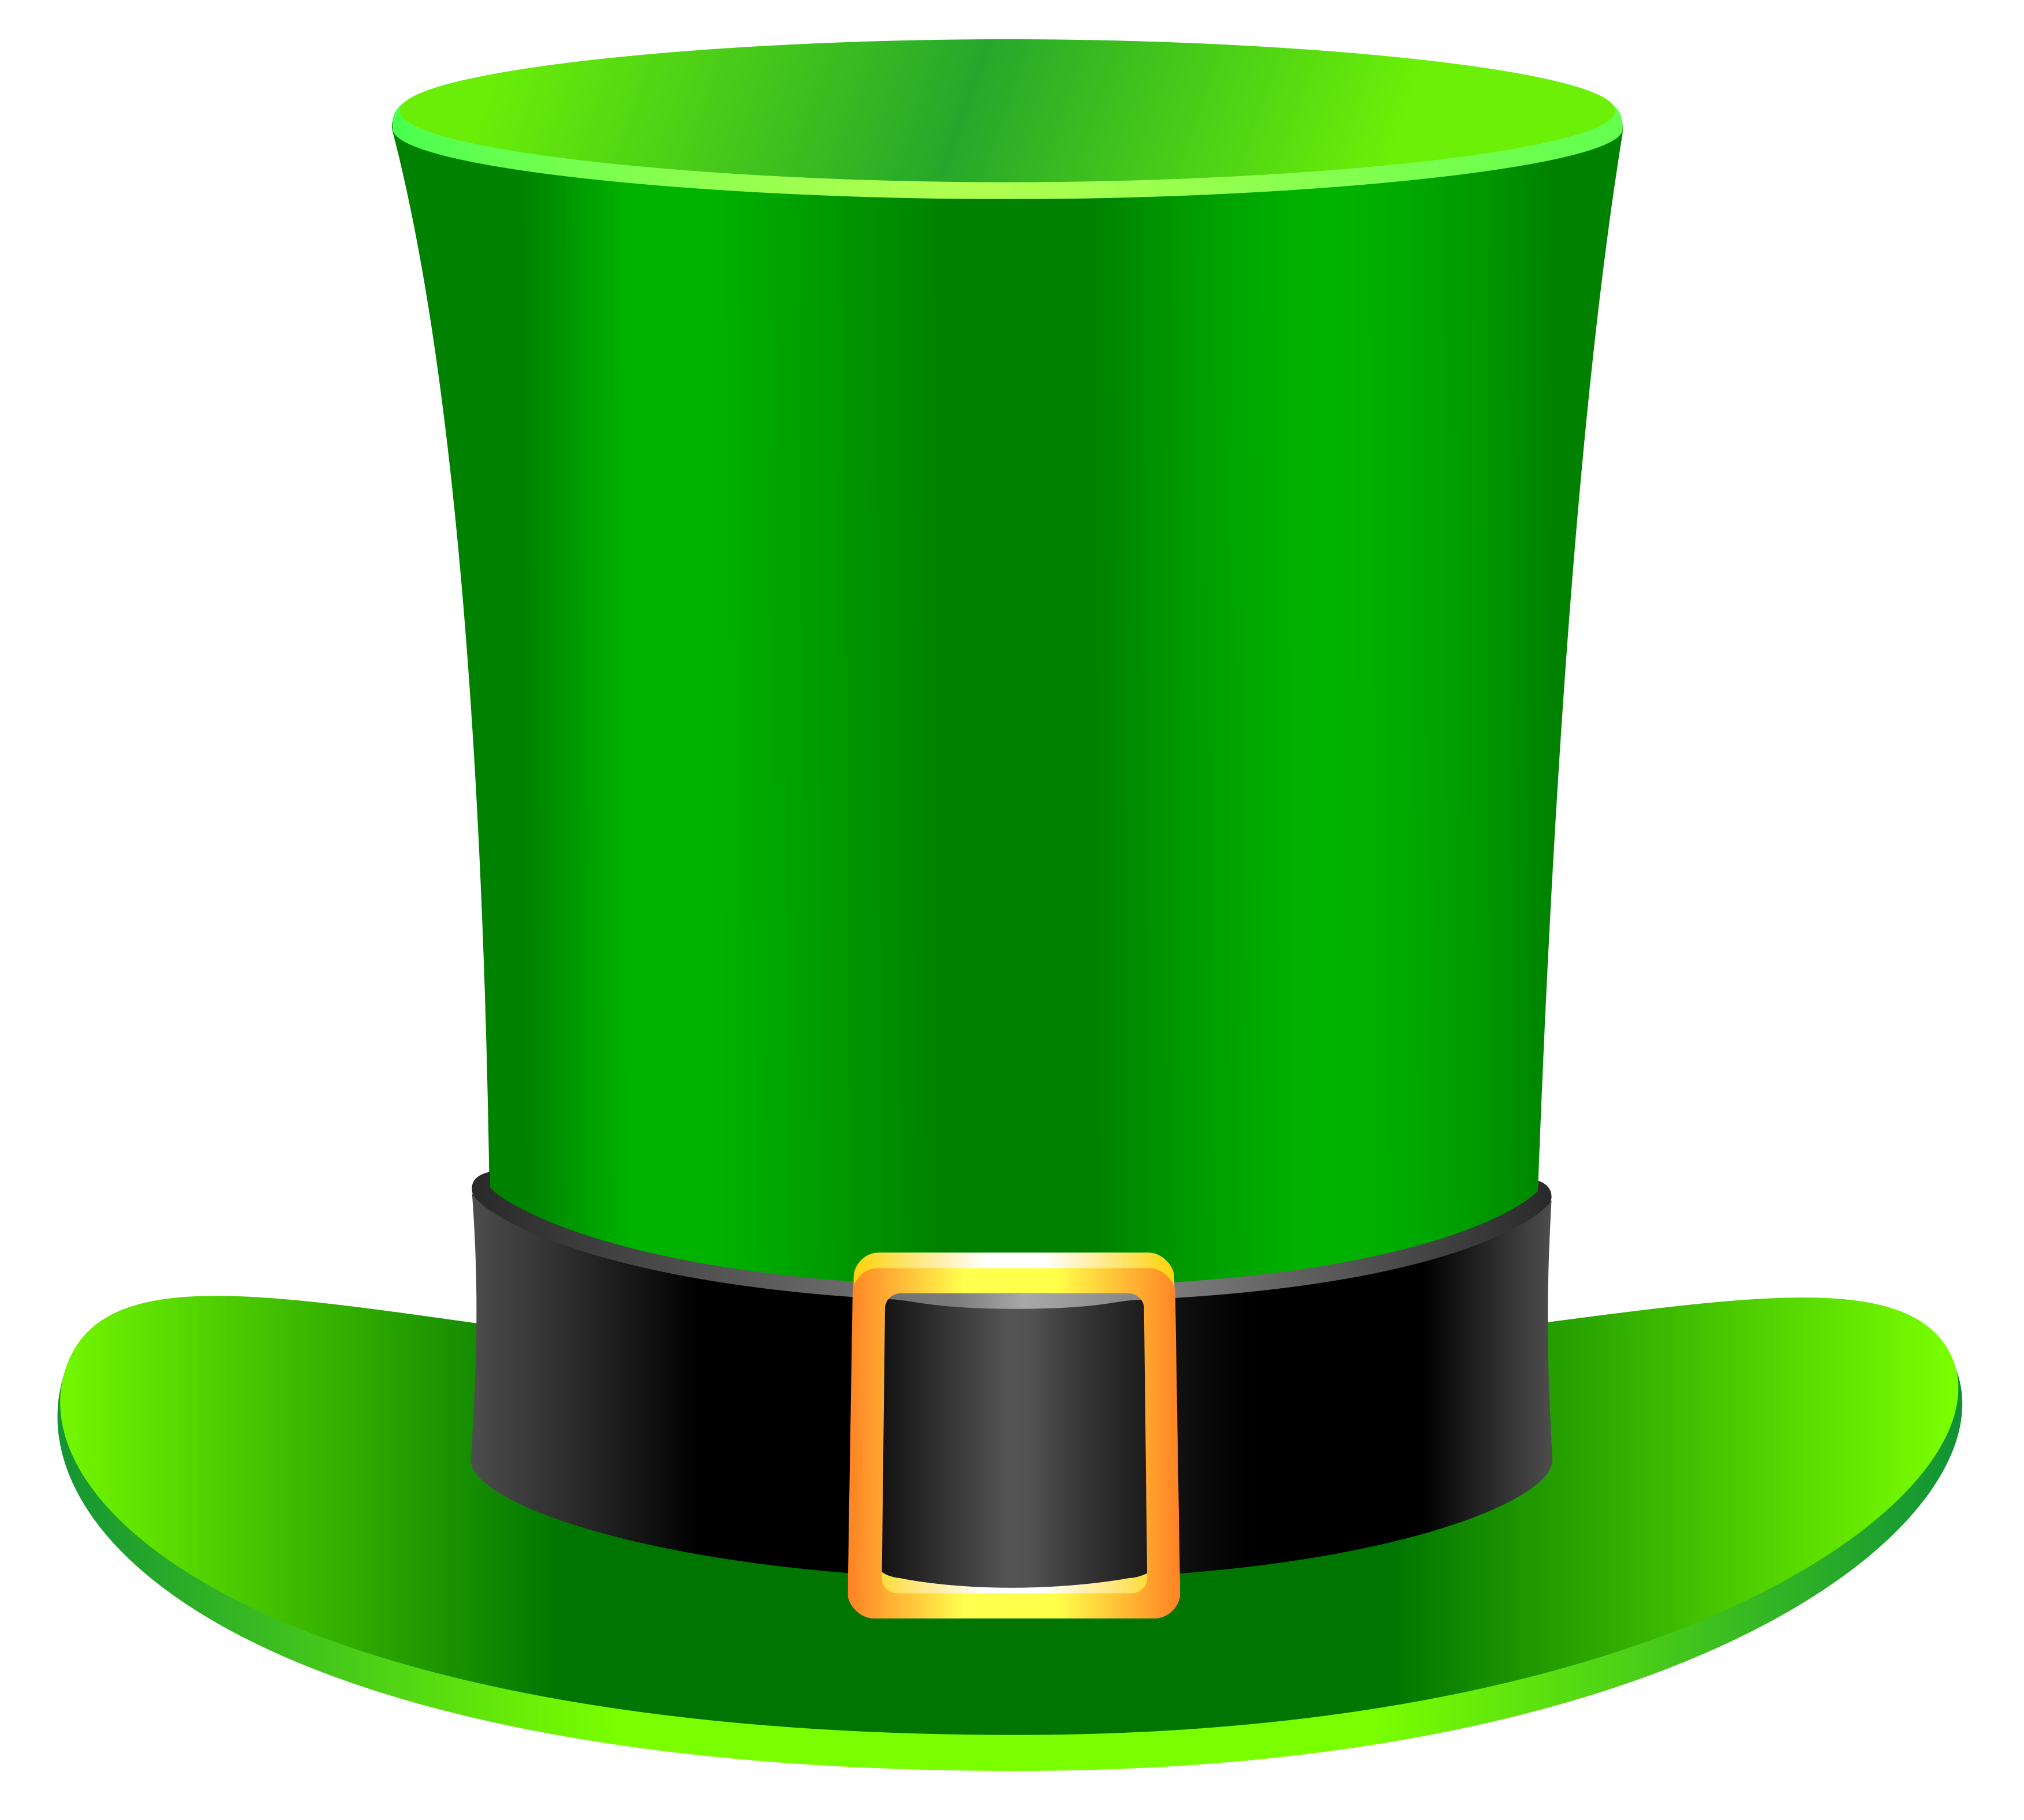 Hat clipart st patrick's day. Patrick leprechaun png gallery